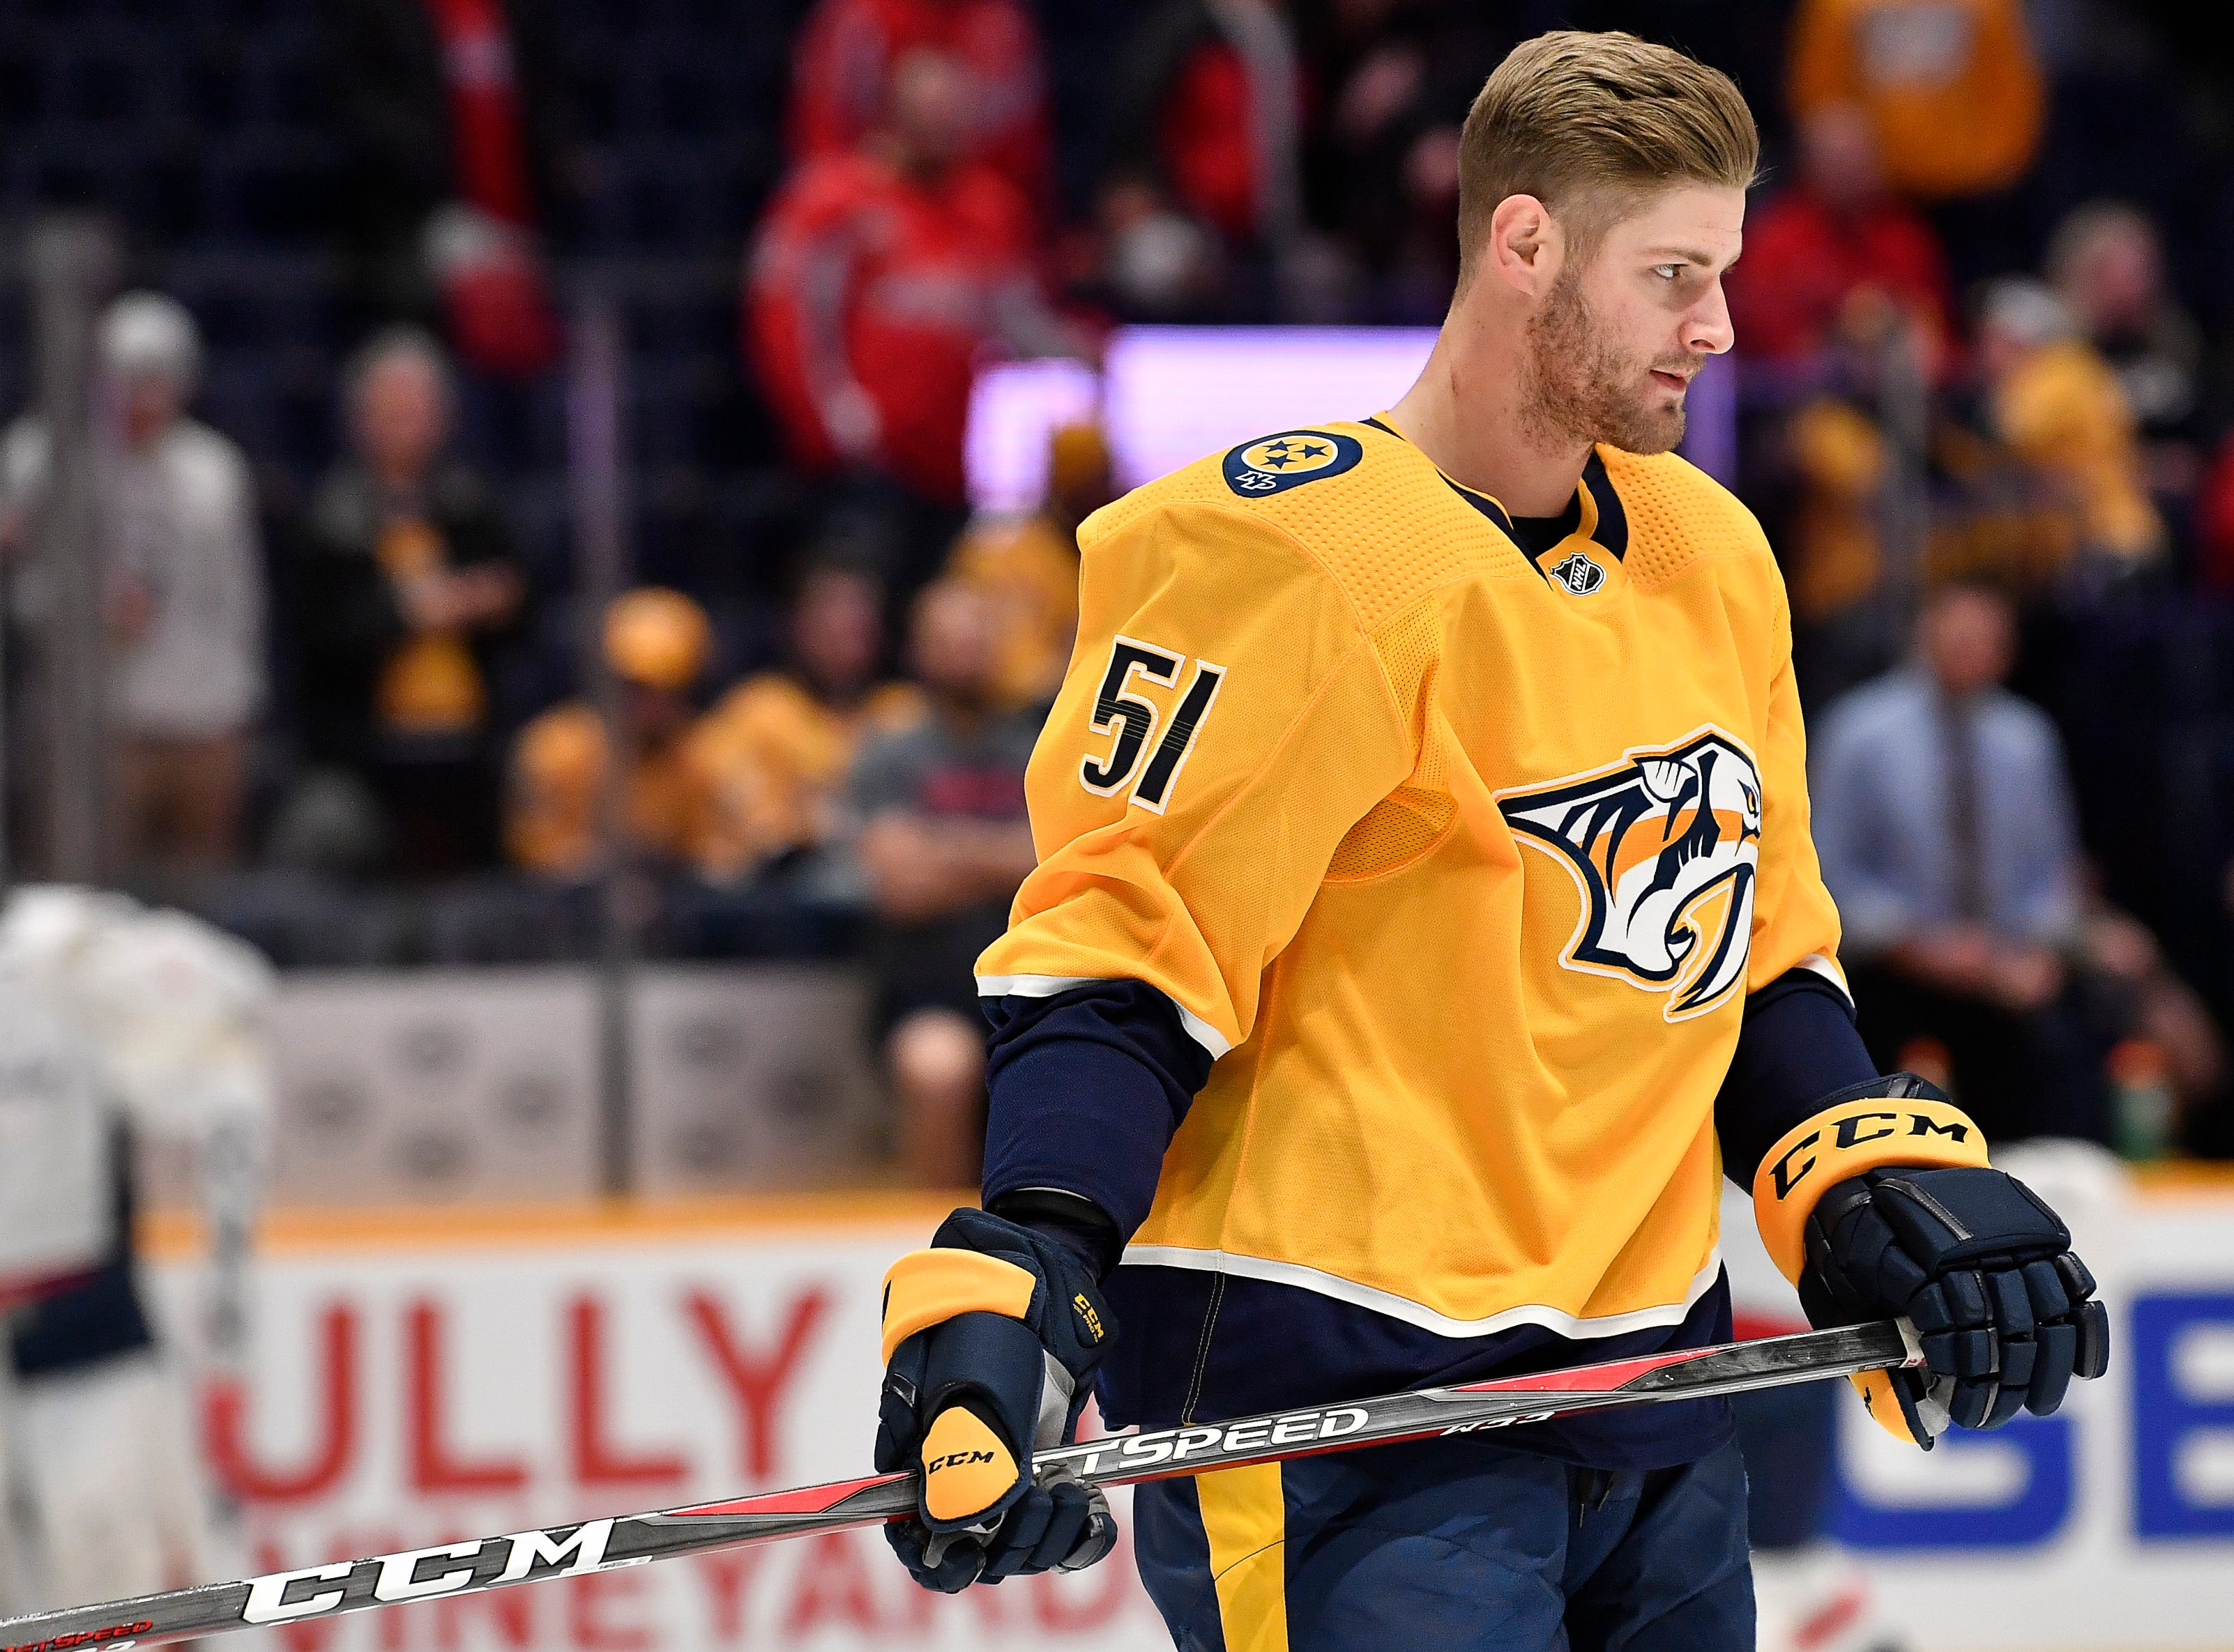 Predators left wing Austin Watson (51) warms up before the game against the Capitals at Bridgestone Arena Tuesday, Jan. 15, 2019, in Nashville, Tenn.